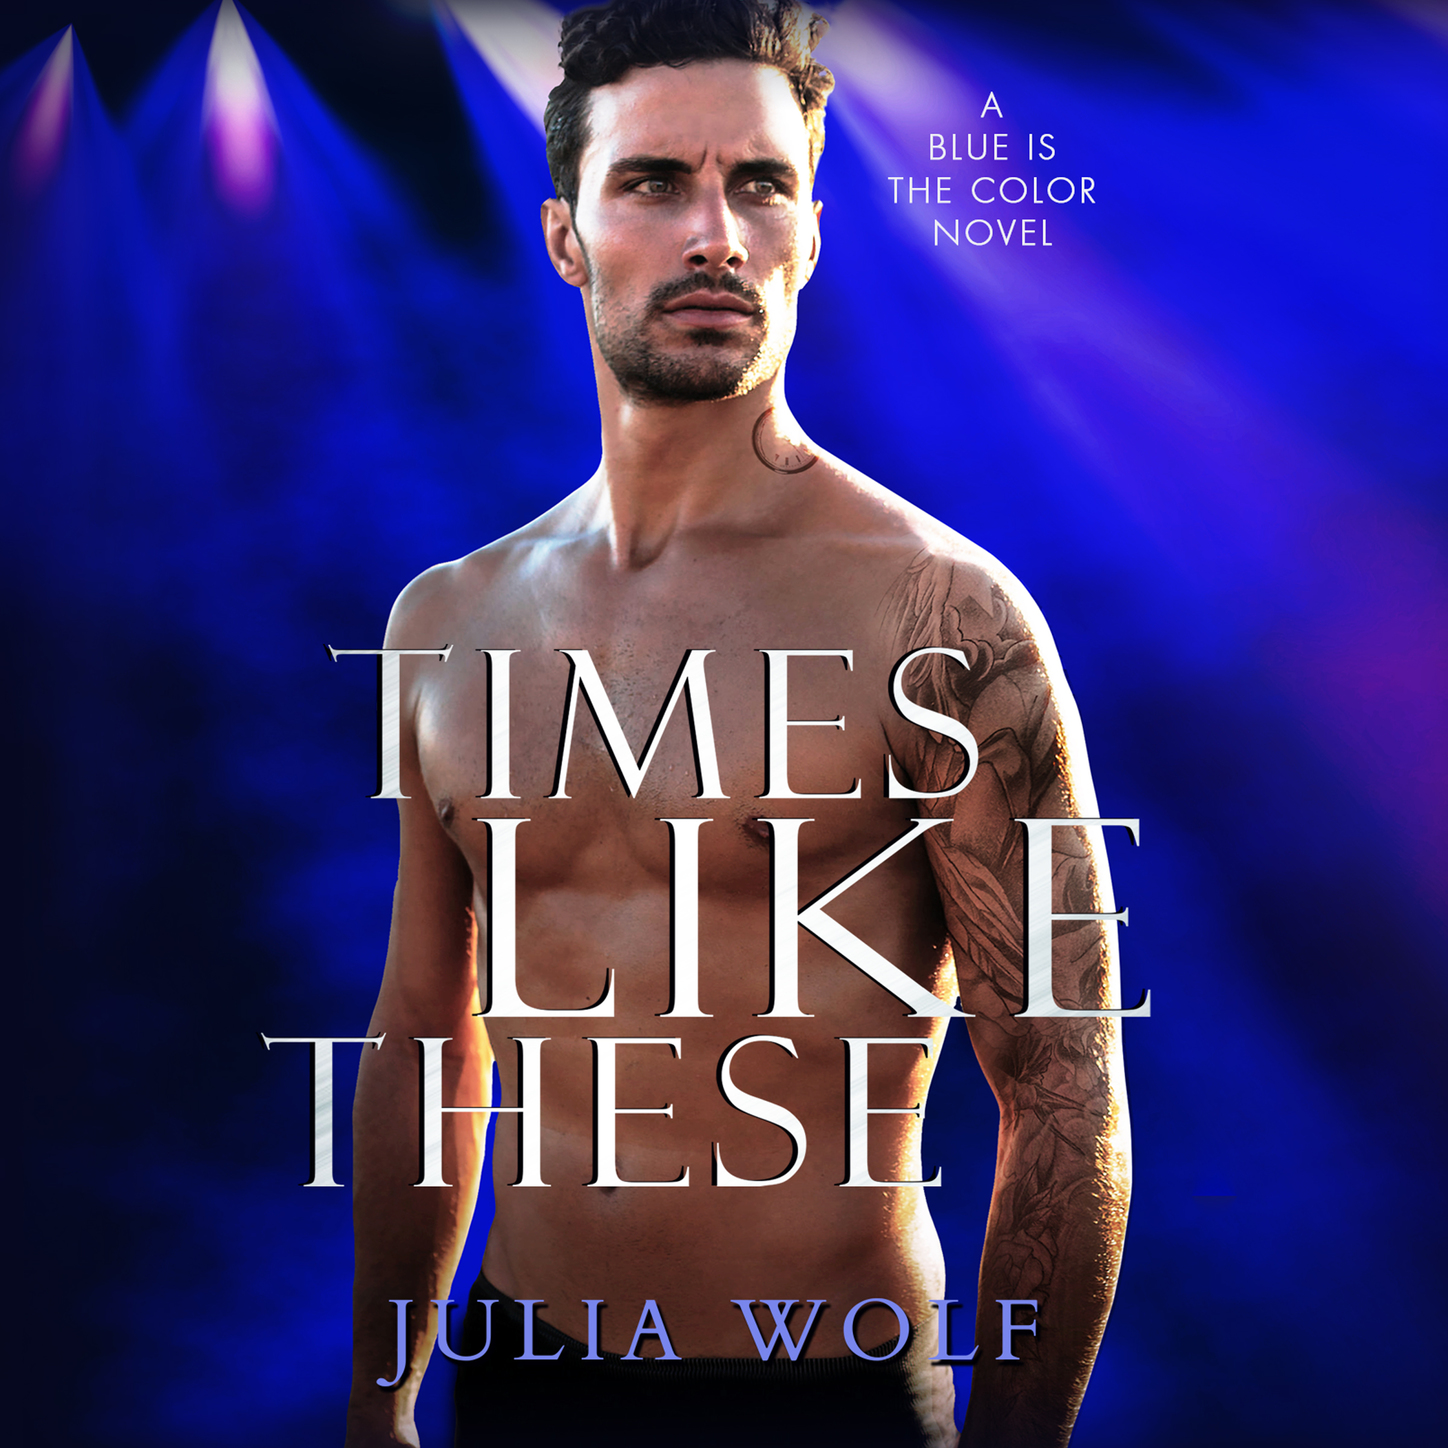 Julia Wolf Times Like These - A Rock Star Romance - Blue Is the Color, Book 1 (Unabridged) julia wolf times like these a rock star romance blue is the color book 1 unabridged